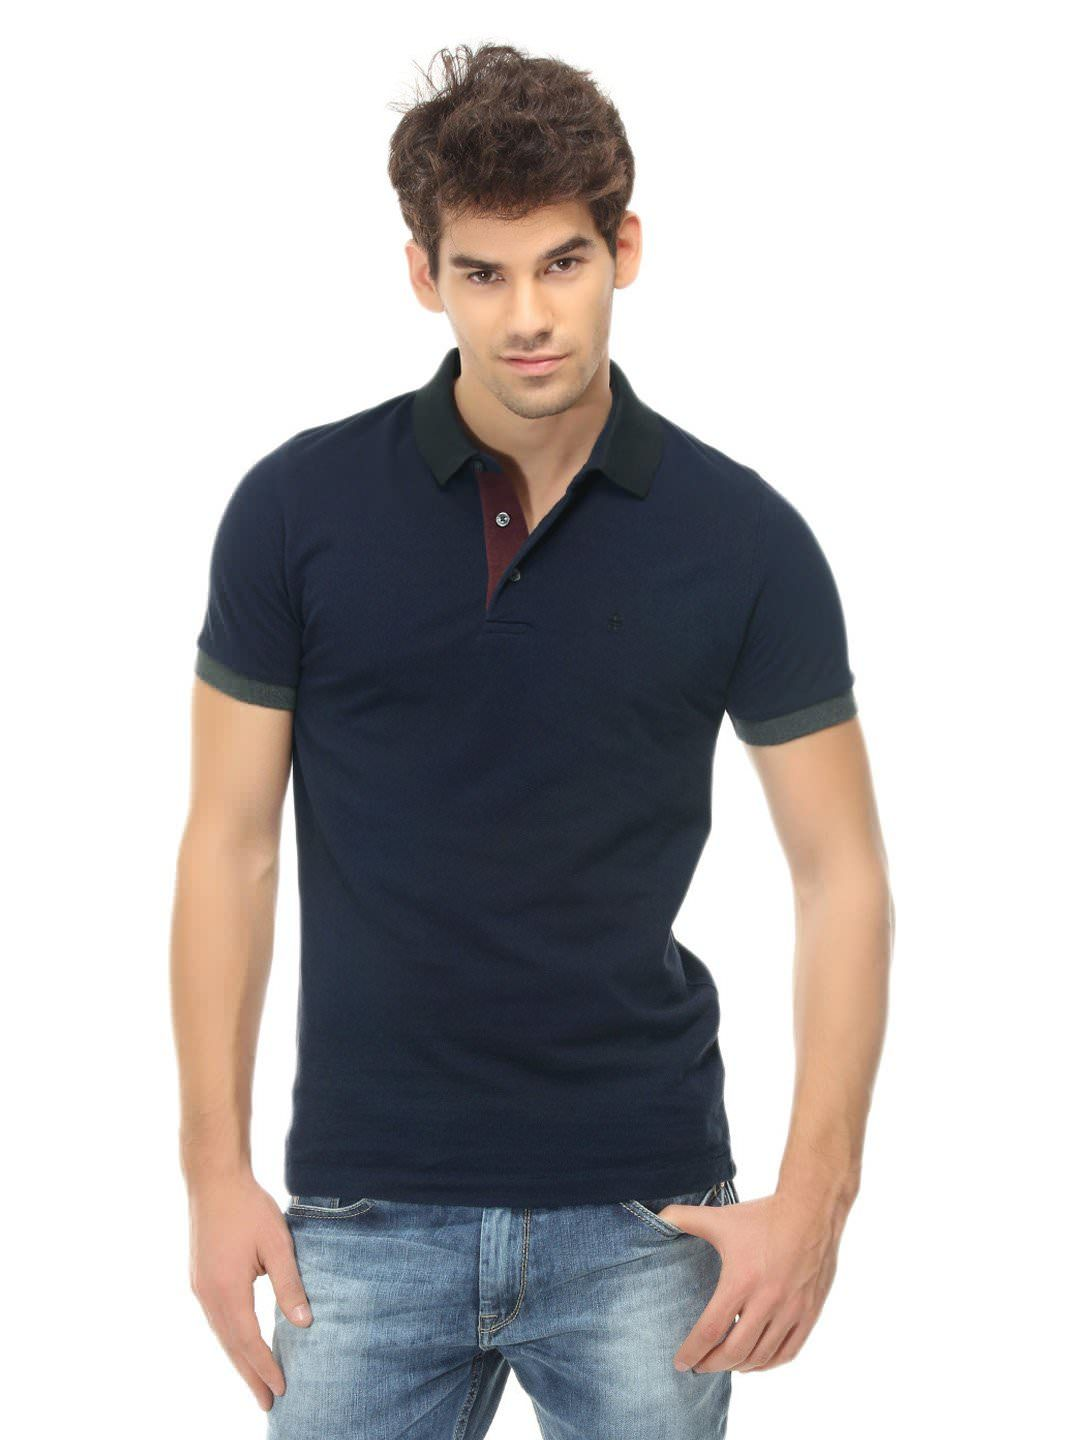 Images of T Shirt For Men - The Fashions Of Paradise